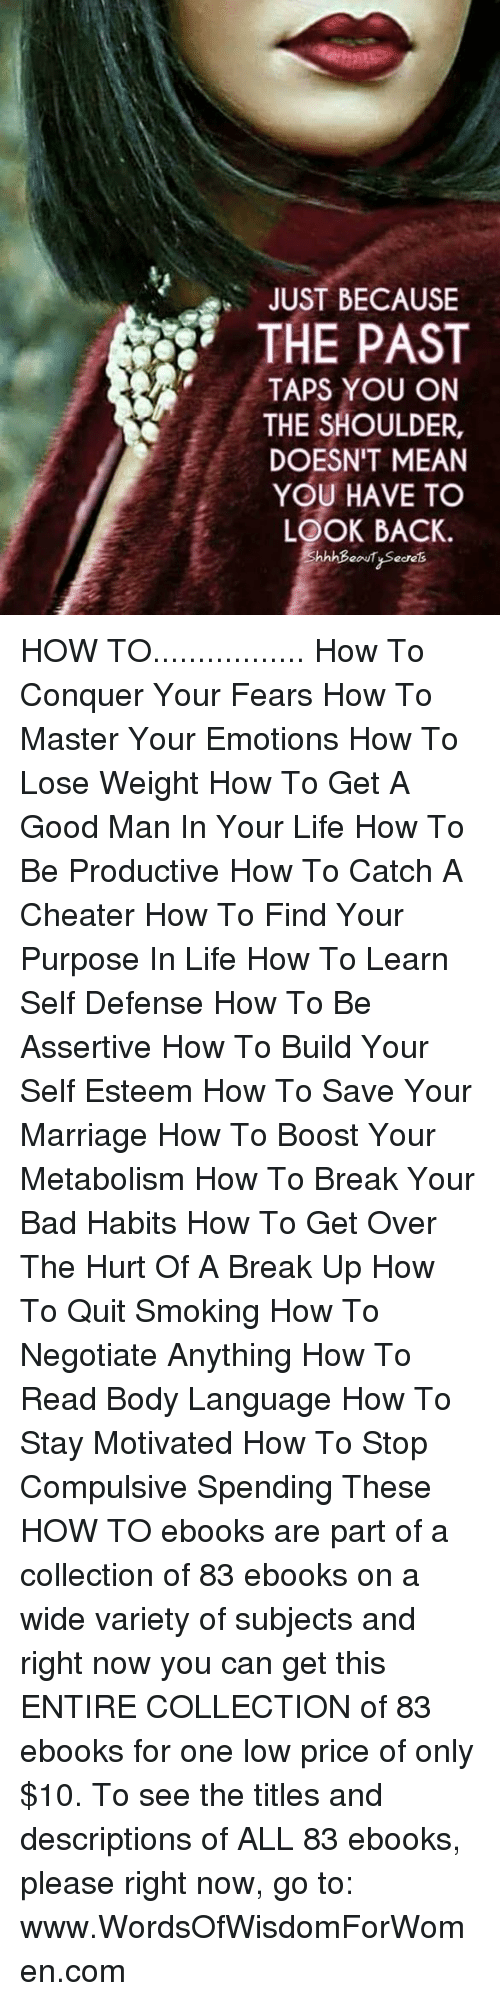 how to lose weight: JUST BECAUSE  THE PAST  TAPS YOU ON  THE SHOULDER,  DOESN'T MEAN  YOU HAVE TO  LOOK BACK. HOW TO................. How To Conquer Your Fears How To Master Your Emotions How To Lose Weight How To Get A Good Man In Your Life  How To Be Productive  How To Catch A Cheater  How To Find Your Purpose In Life  How To Learn Self Defense How To Be Assertive   How To Build Your Self Esteem   How To Save Your Marriage  How To Boost Your Metabolism  How To Break Your Bad Habits   How To Get Over The Hurt Of A Break Up  How To Quit Smoking  How To Negotiate Anything  How To Read Body Language   How To Stay Motivated  How To Stop Compulsive Spending    These HOW TO ebooks are part of a collection of 83 ebooks on a wide variety of subjects and right now you can get this ENTIRE COLLECTION of 83 ebooks for one low price of only $10. To see the titles and descriptions of ALL 83 ebooks, please right now, go to: www.WordsOfWisdomForWomen.com